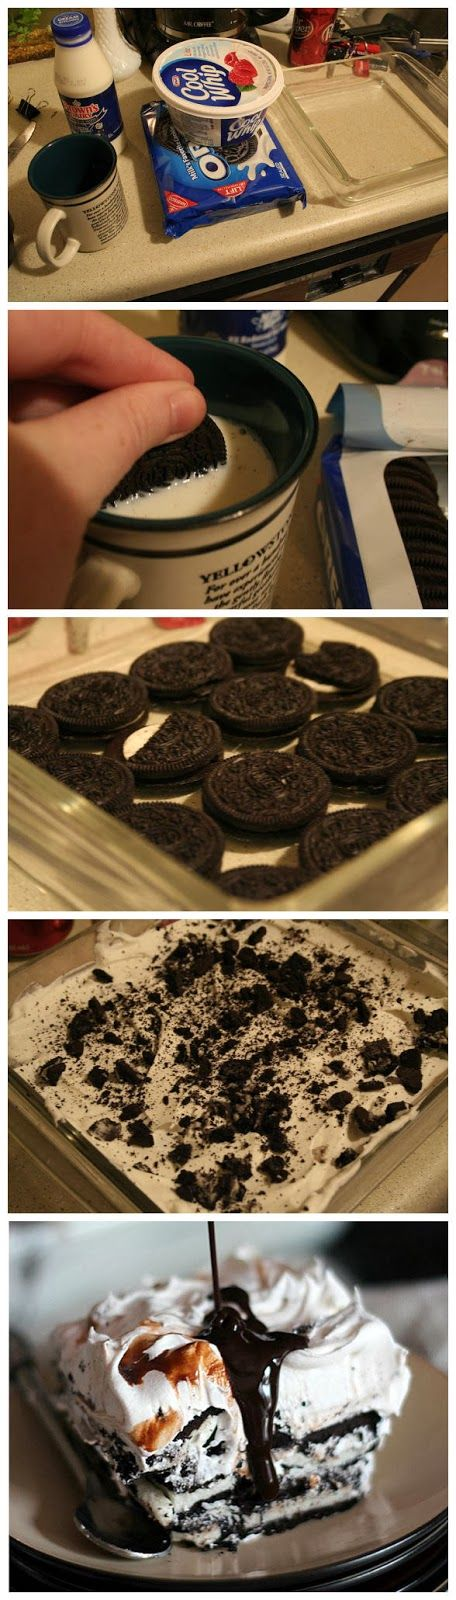 Oreo Icebox Cake. I'm going to do this with the Cookie dough Oreos and add a chocolate crust to the bottom!